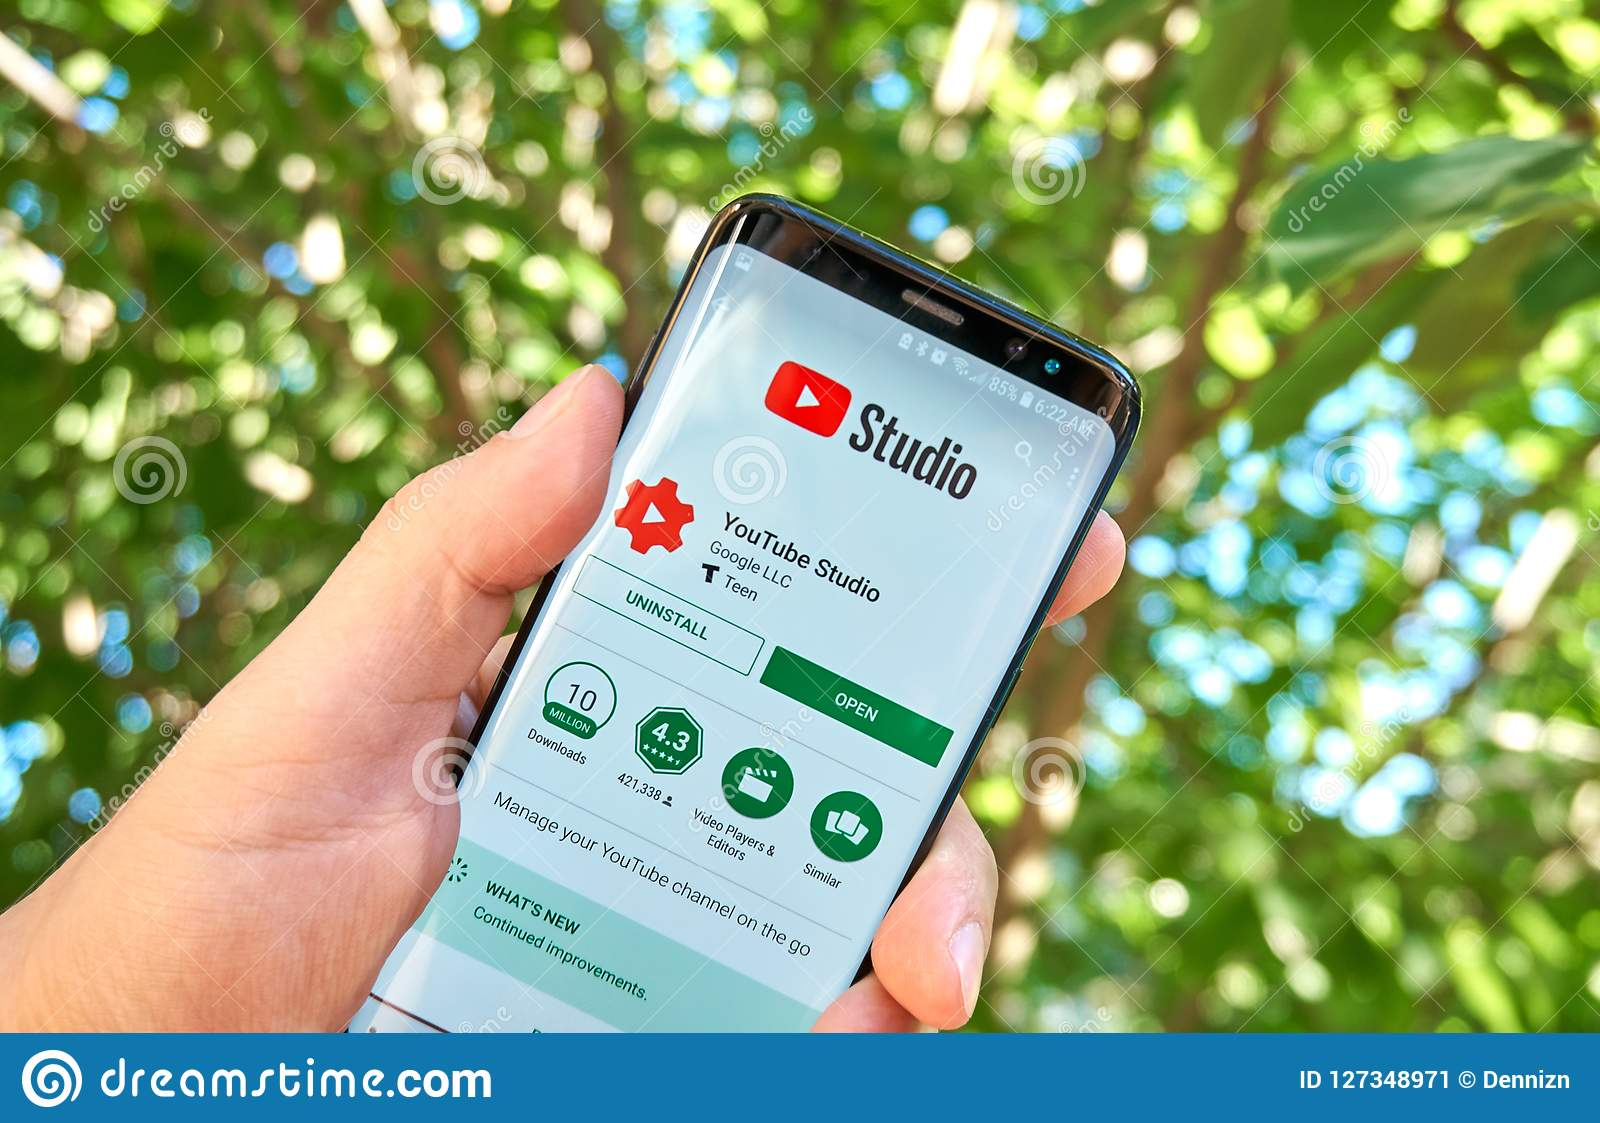 Google Youtube Studio Mobile App On Samsung S8  Editorial Photo